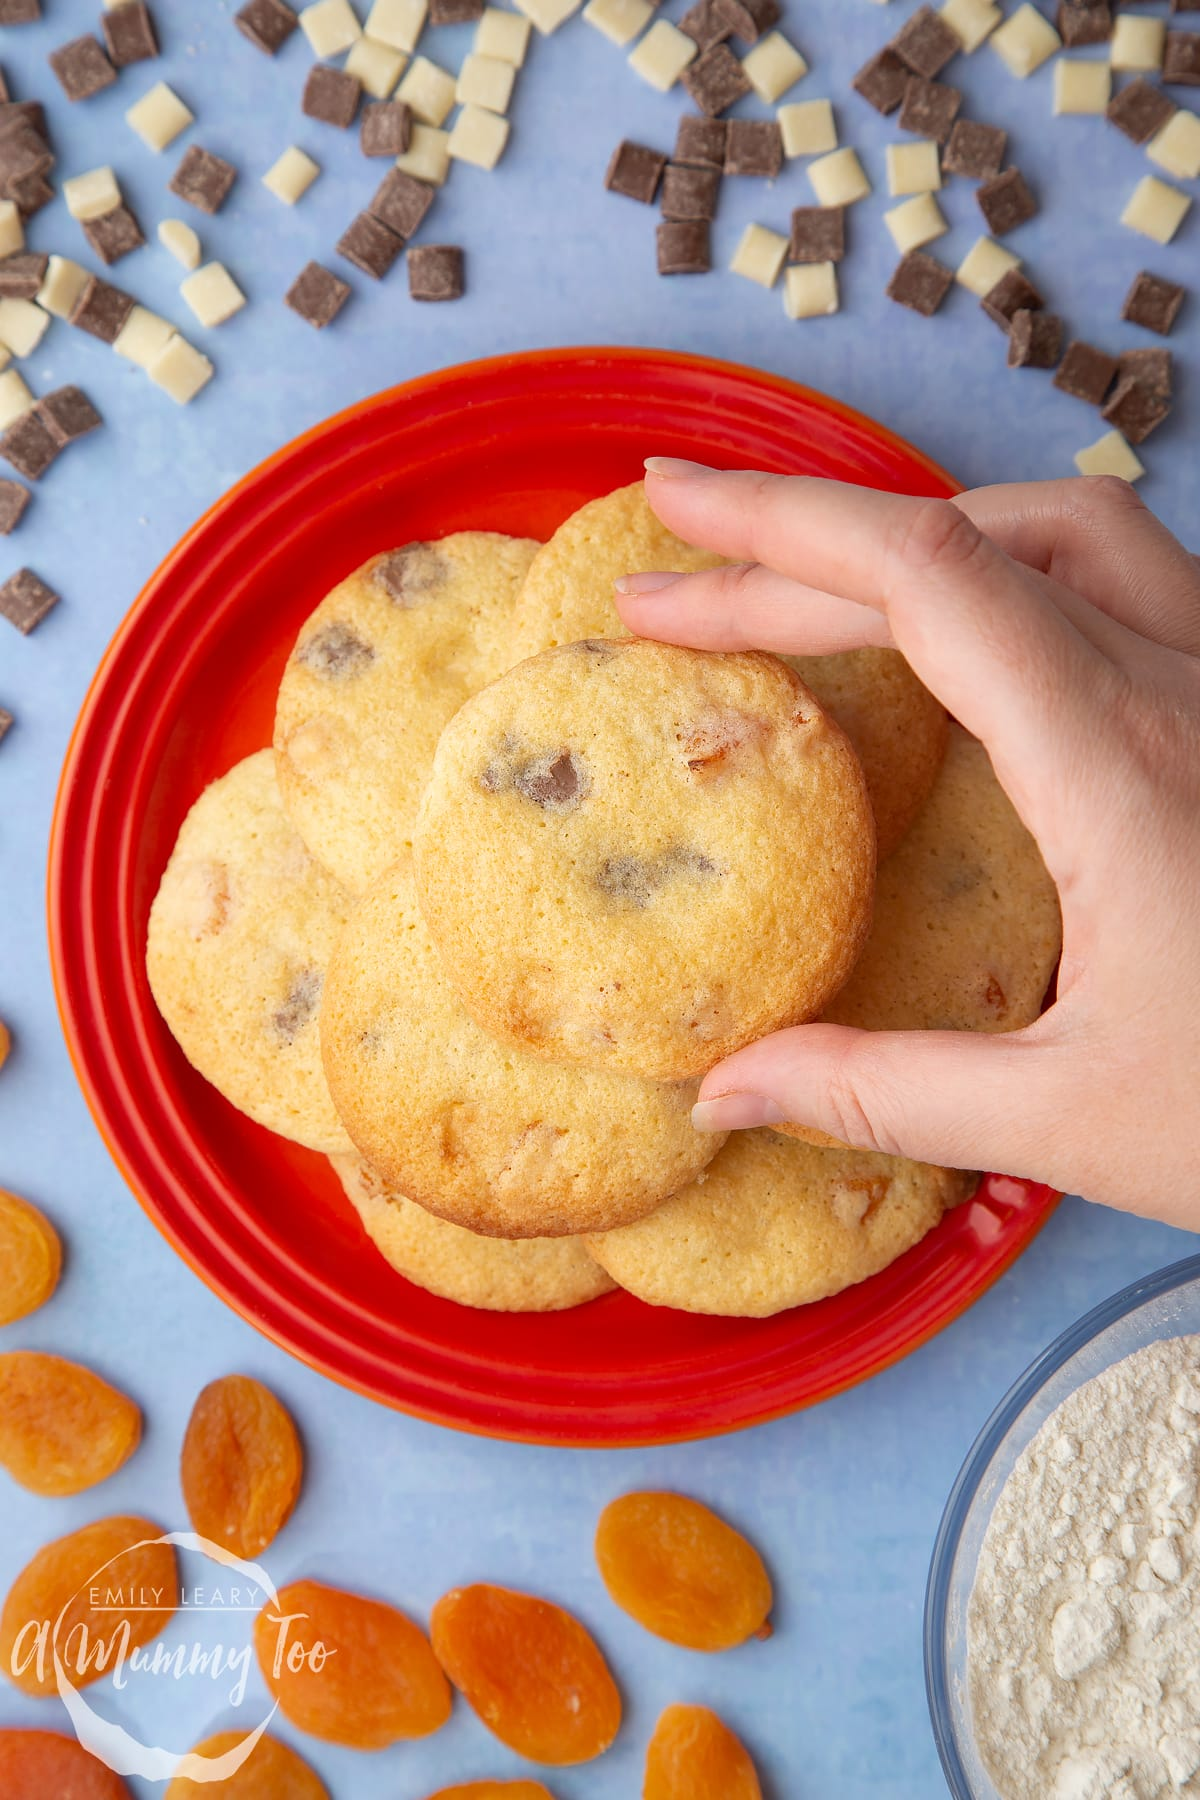 Apricot chocolate chip cookies stacked on an orange plate. A hand reaches to take one.